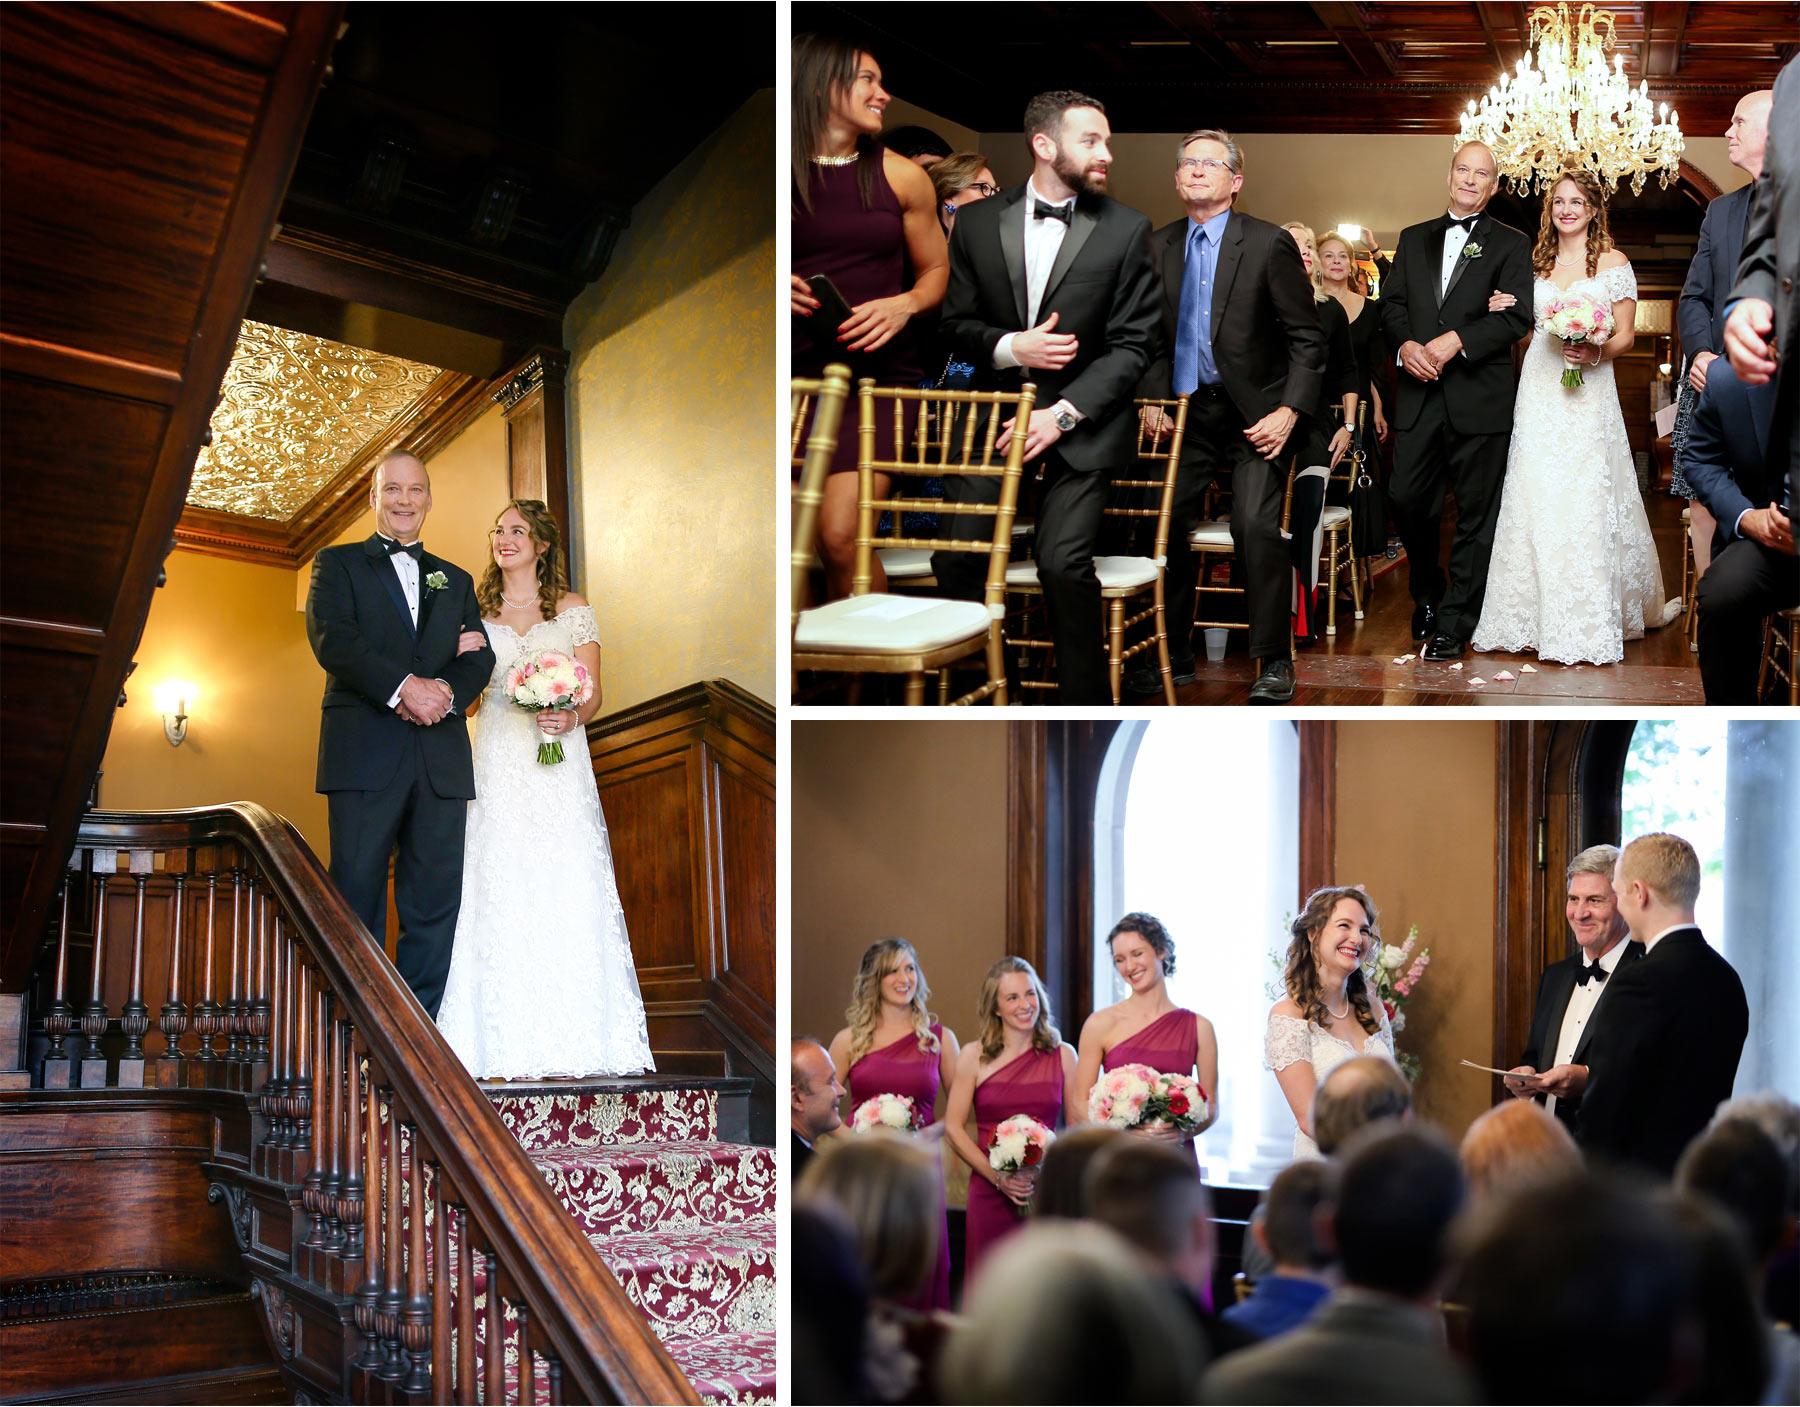 04-Minneapolis-Minnesota-Wedding-Photography-by-Vick-Photography-Semple-Mansion-Ceremony-Mansion-Danielle-and-Chance.jpg